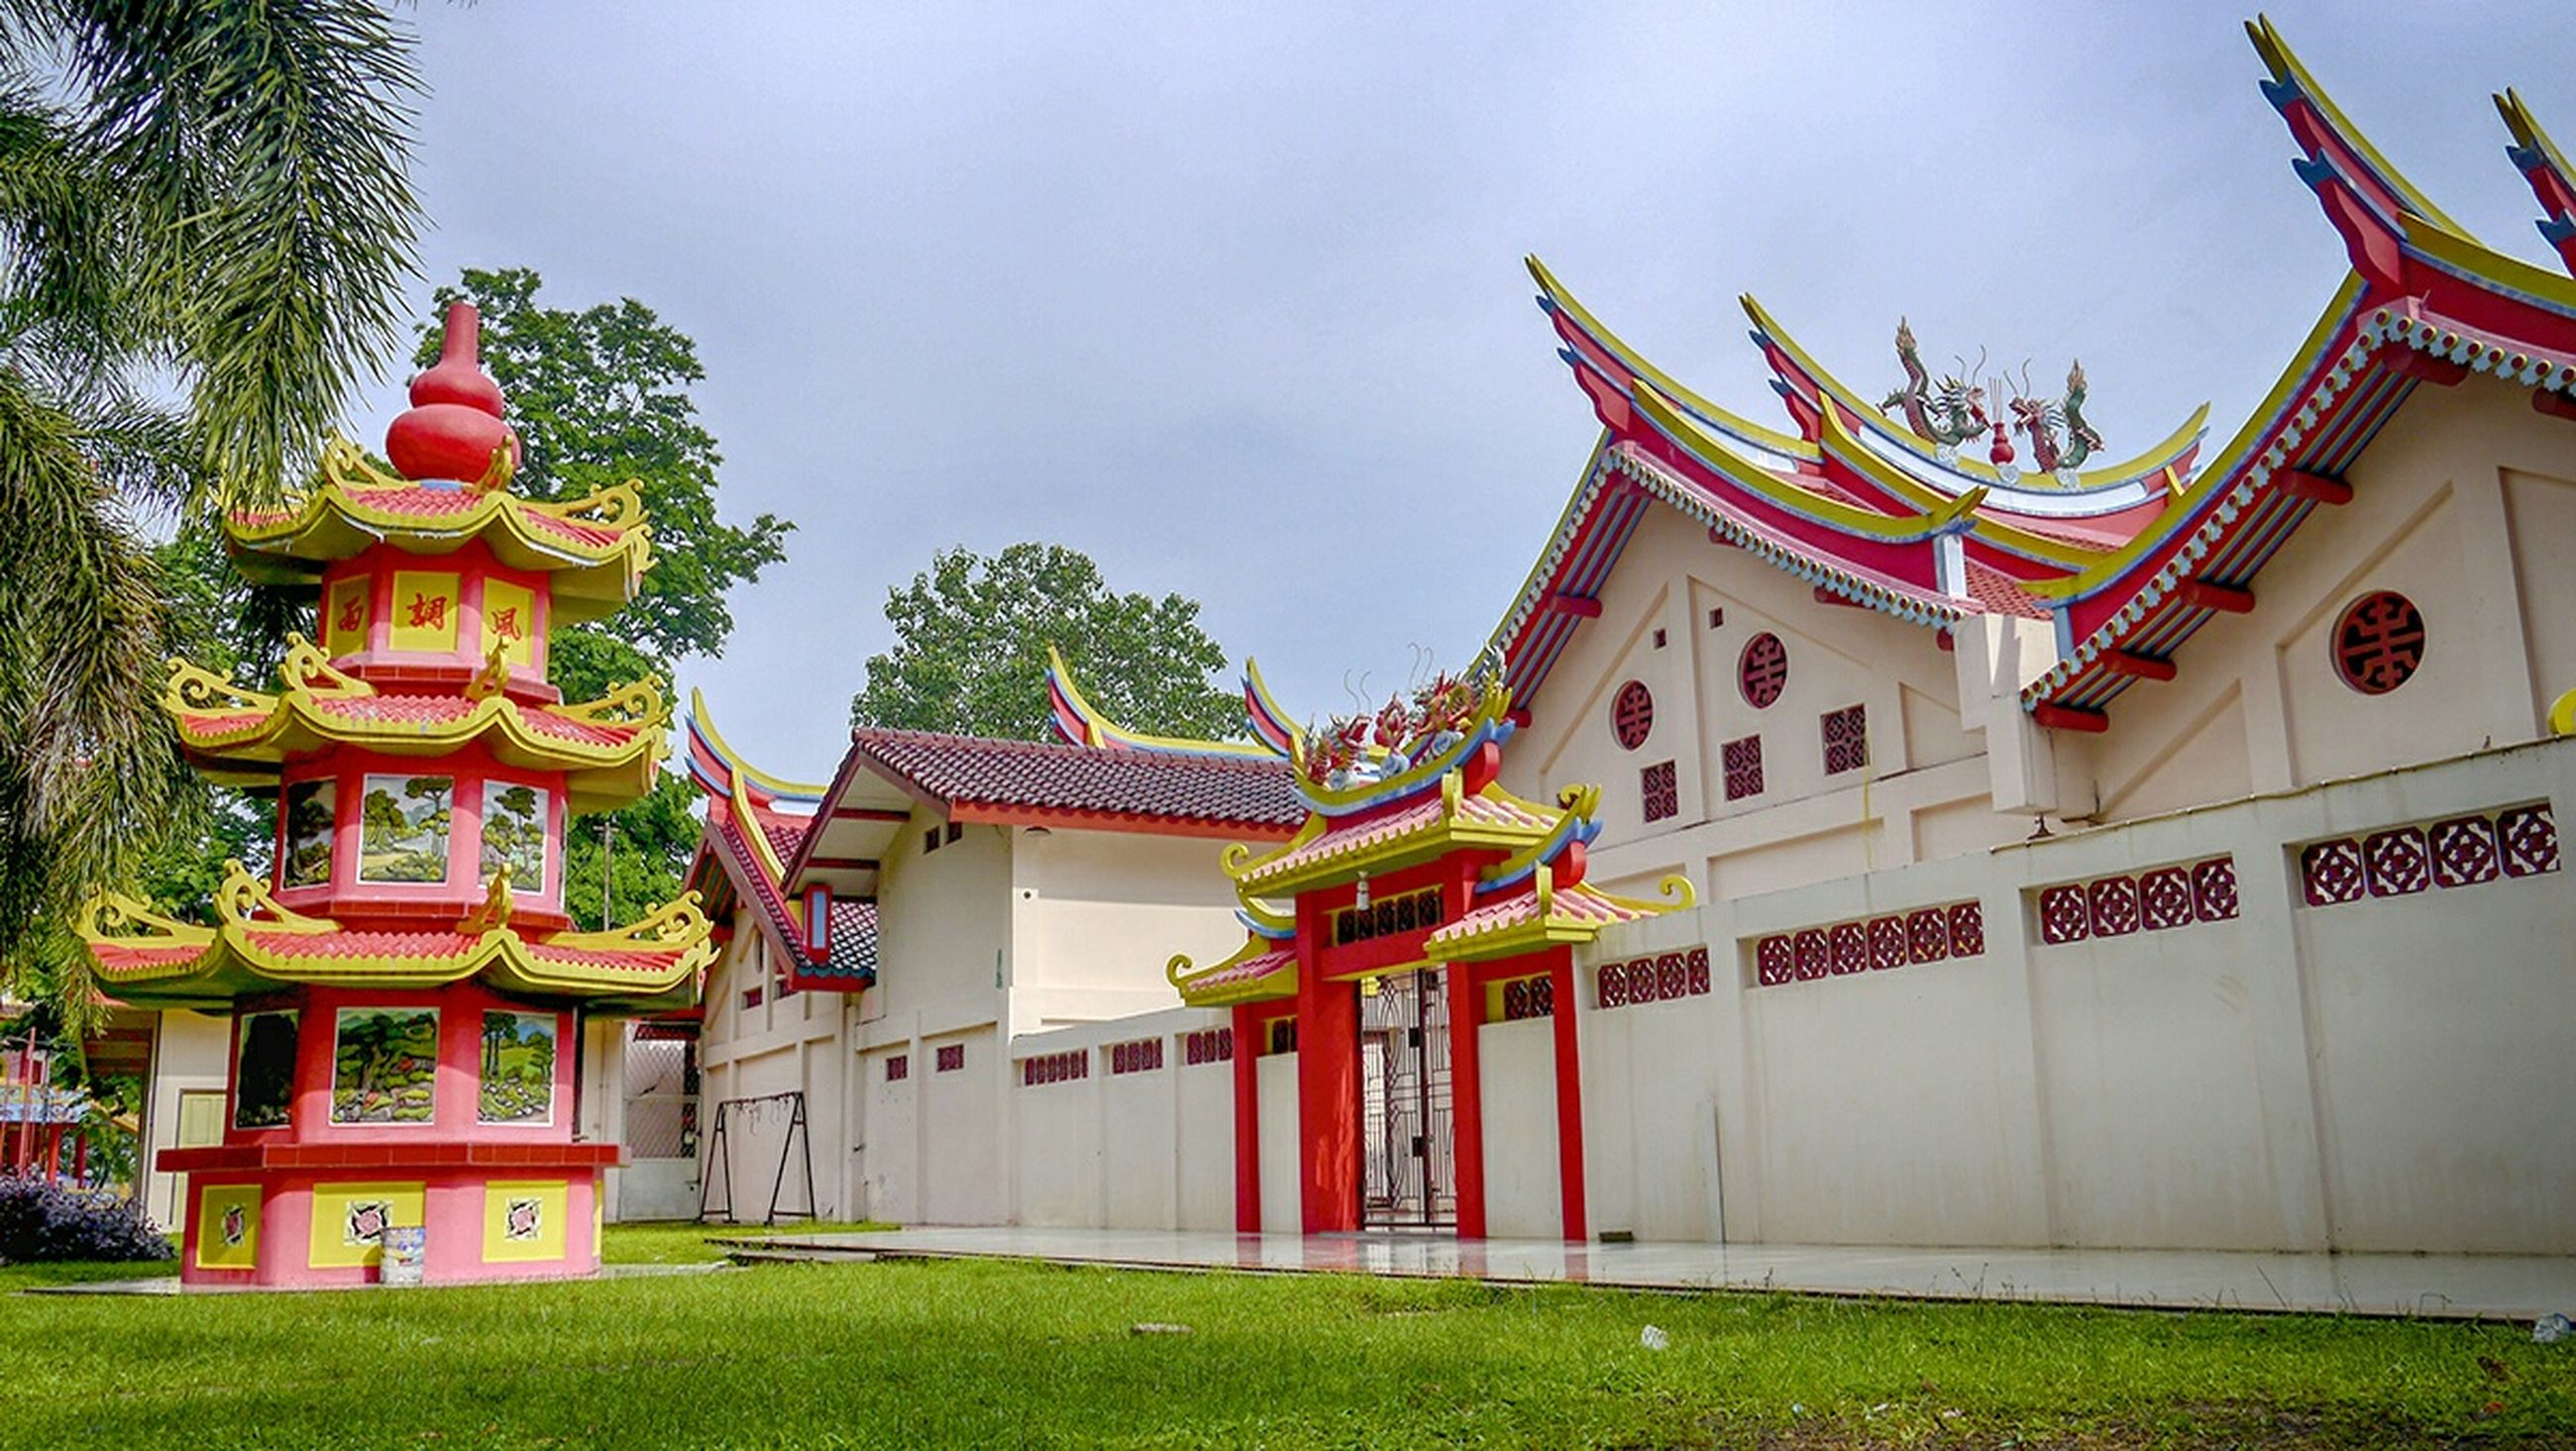 architecture, building exterior, built structure, religion, place of worship, temple - building, spirituality, sky, tree, tradition, low angle view, cultures, multi colored, outdoors, day, temple, roof, history, red